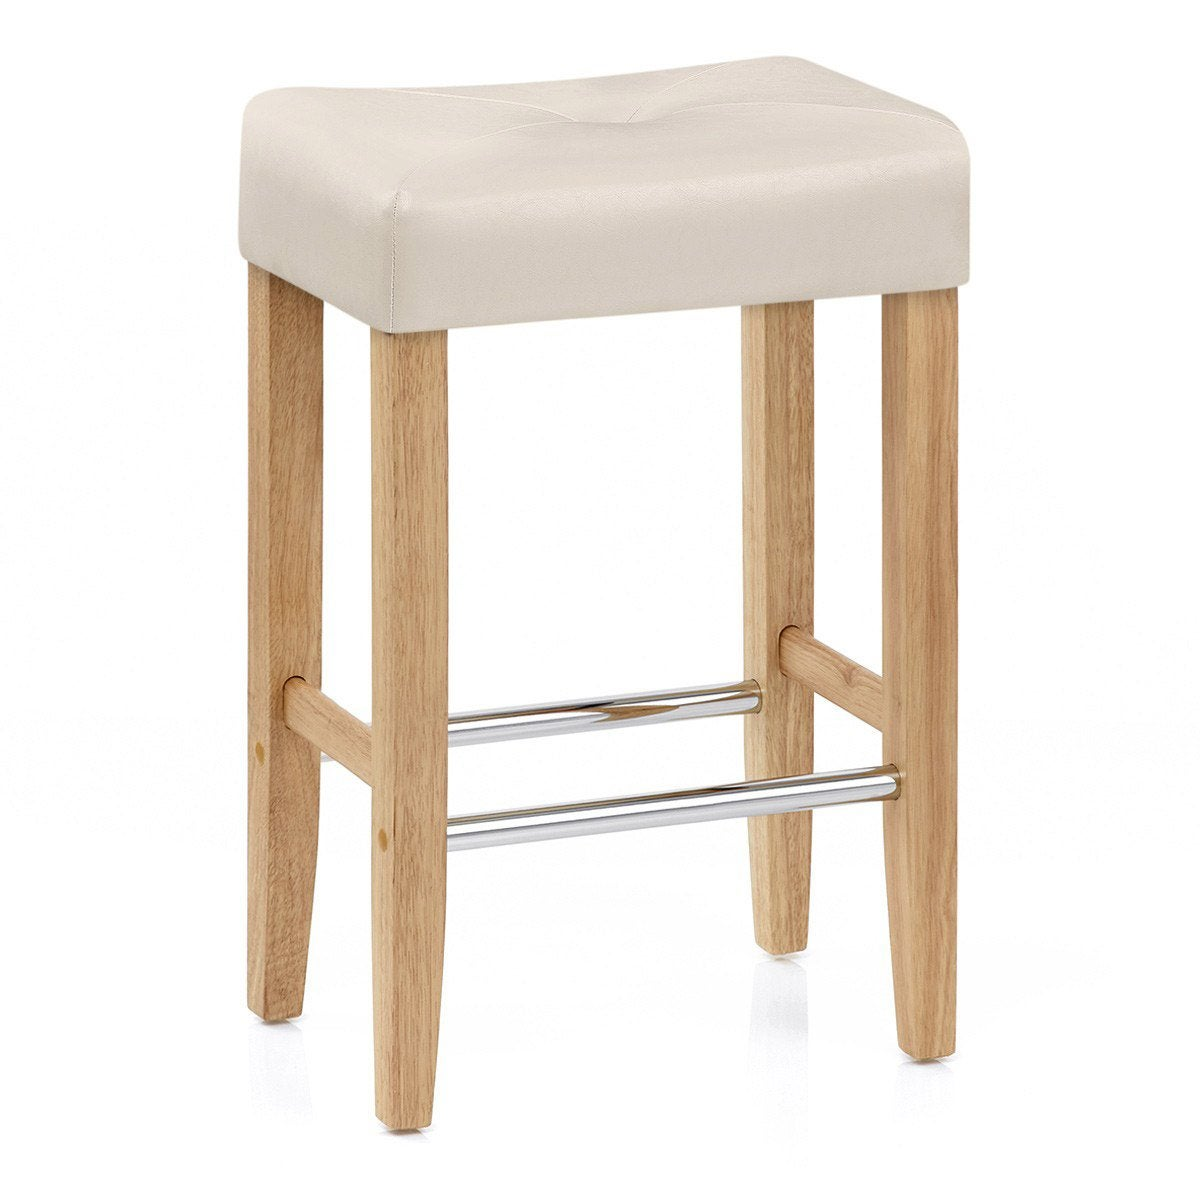 Otis Wooden Breakfast Bar Stool Fabric